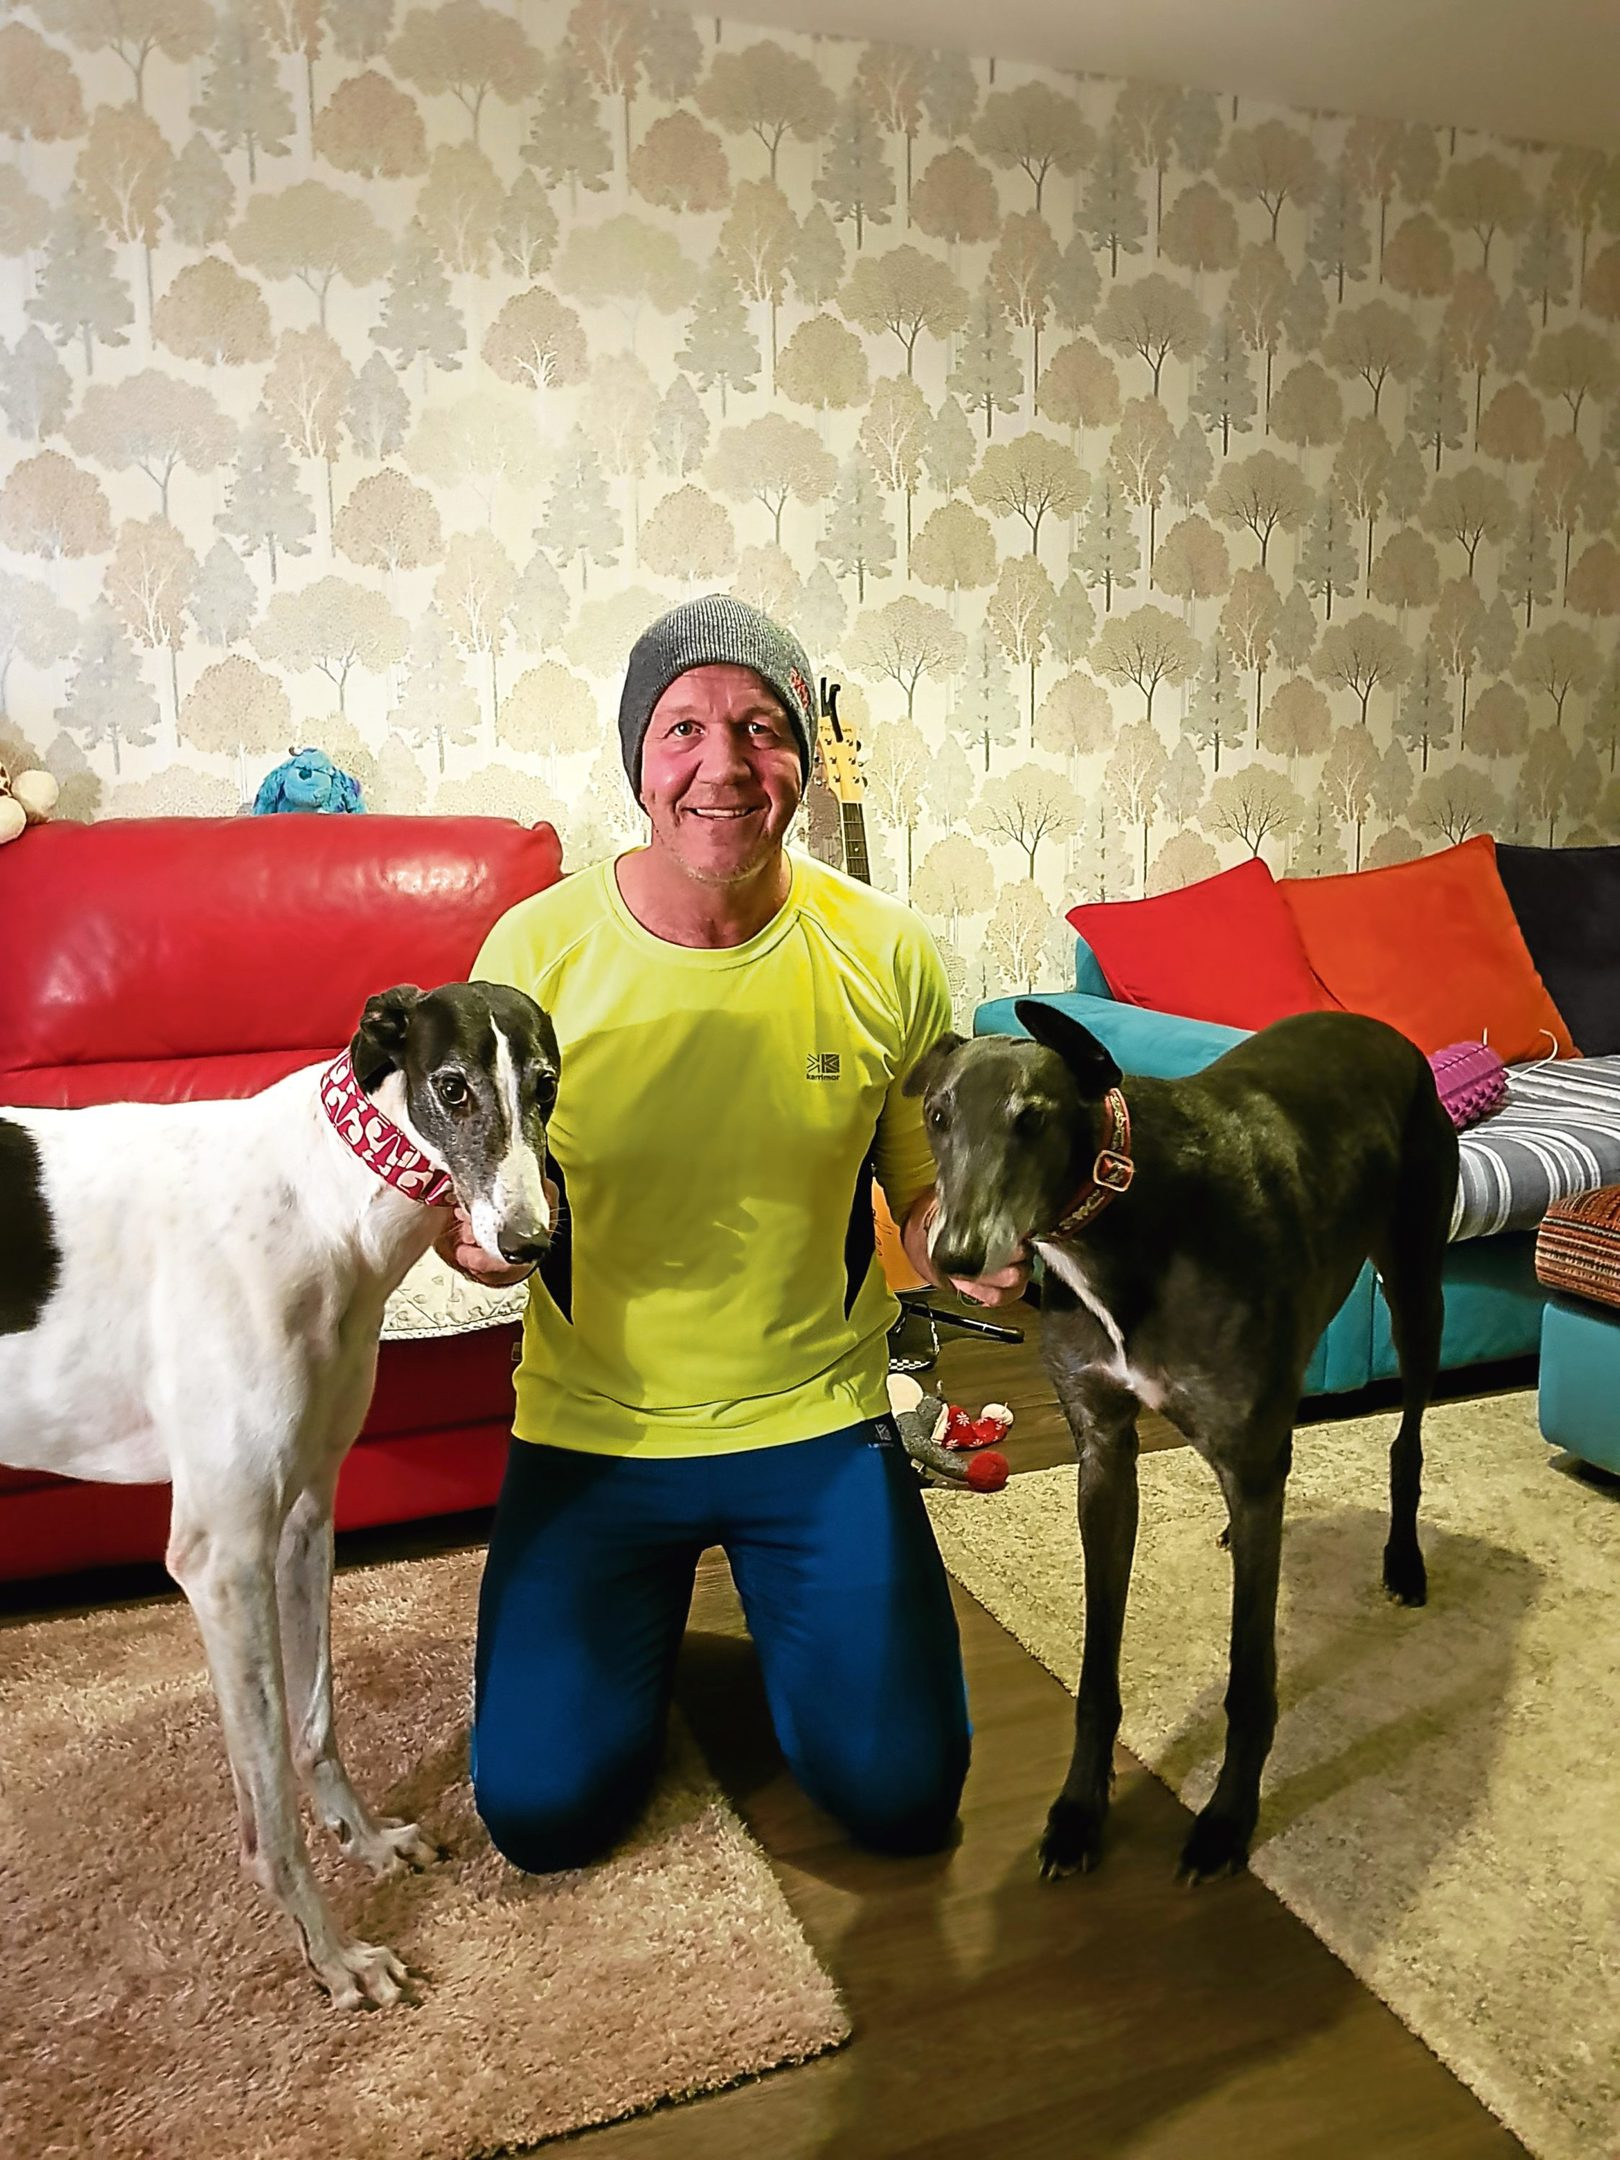 Craig smashed his target of £400, raising more than £1,000 for the Give a Greyhound a Home charity.